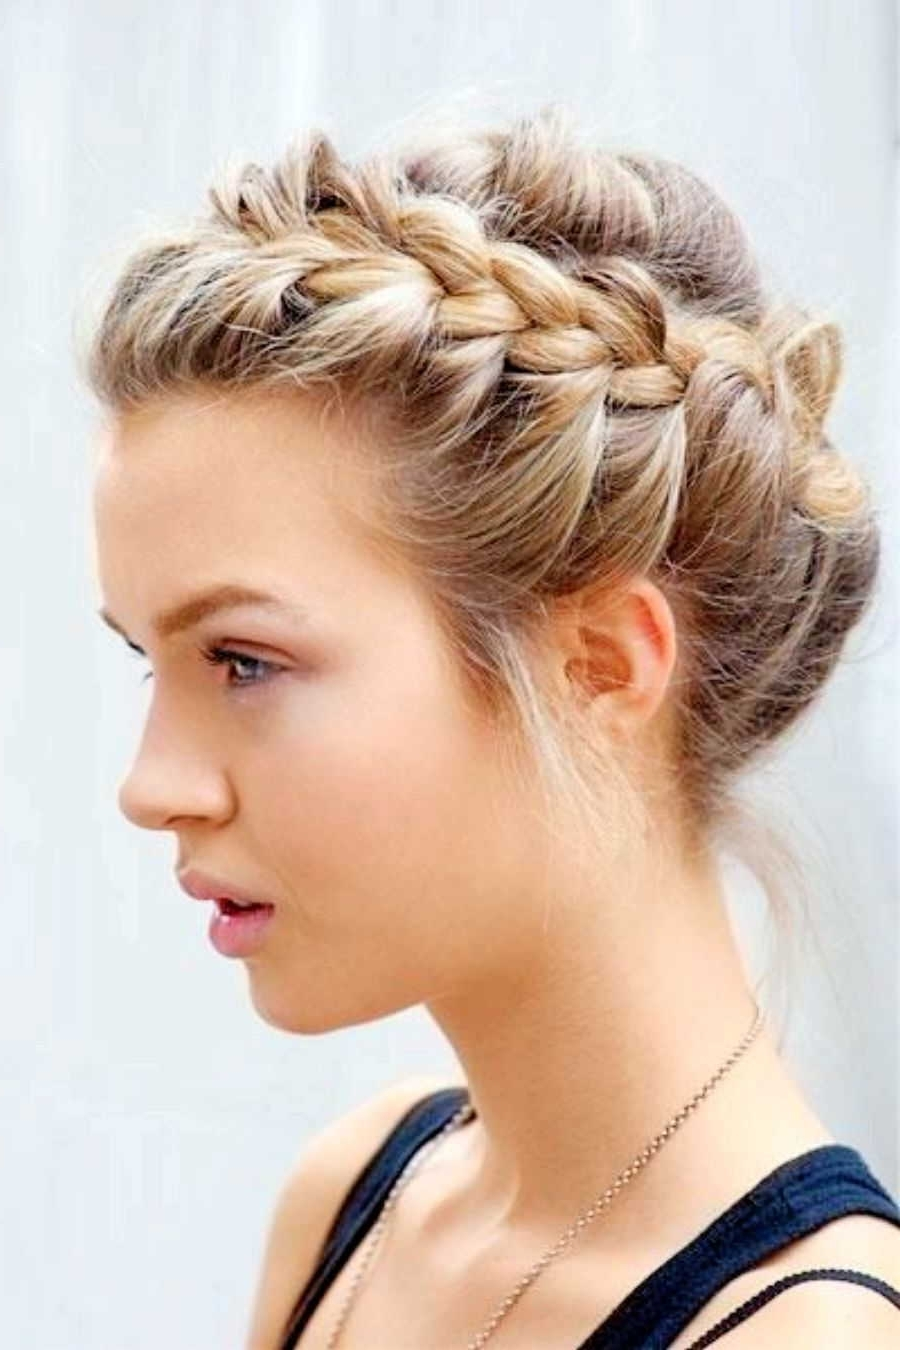 Hairstyles Updo Braid Updo For Short Hair Braids For Short Hair Intended For Updos For Fine Short Hair (View 8 of 15)